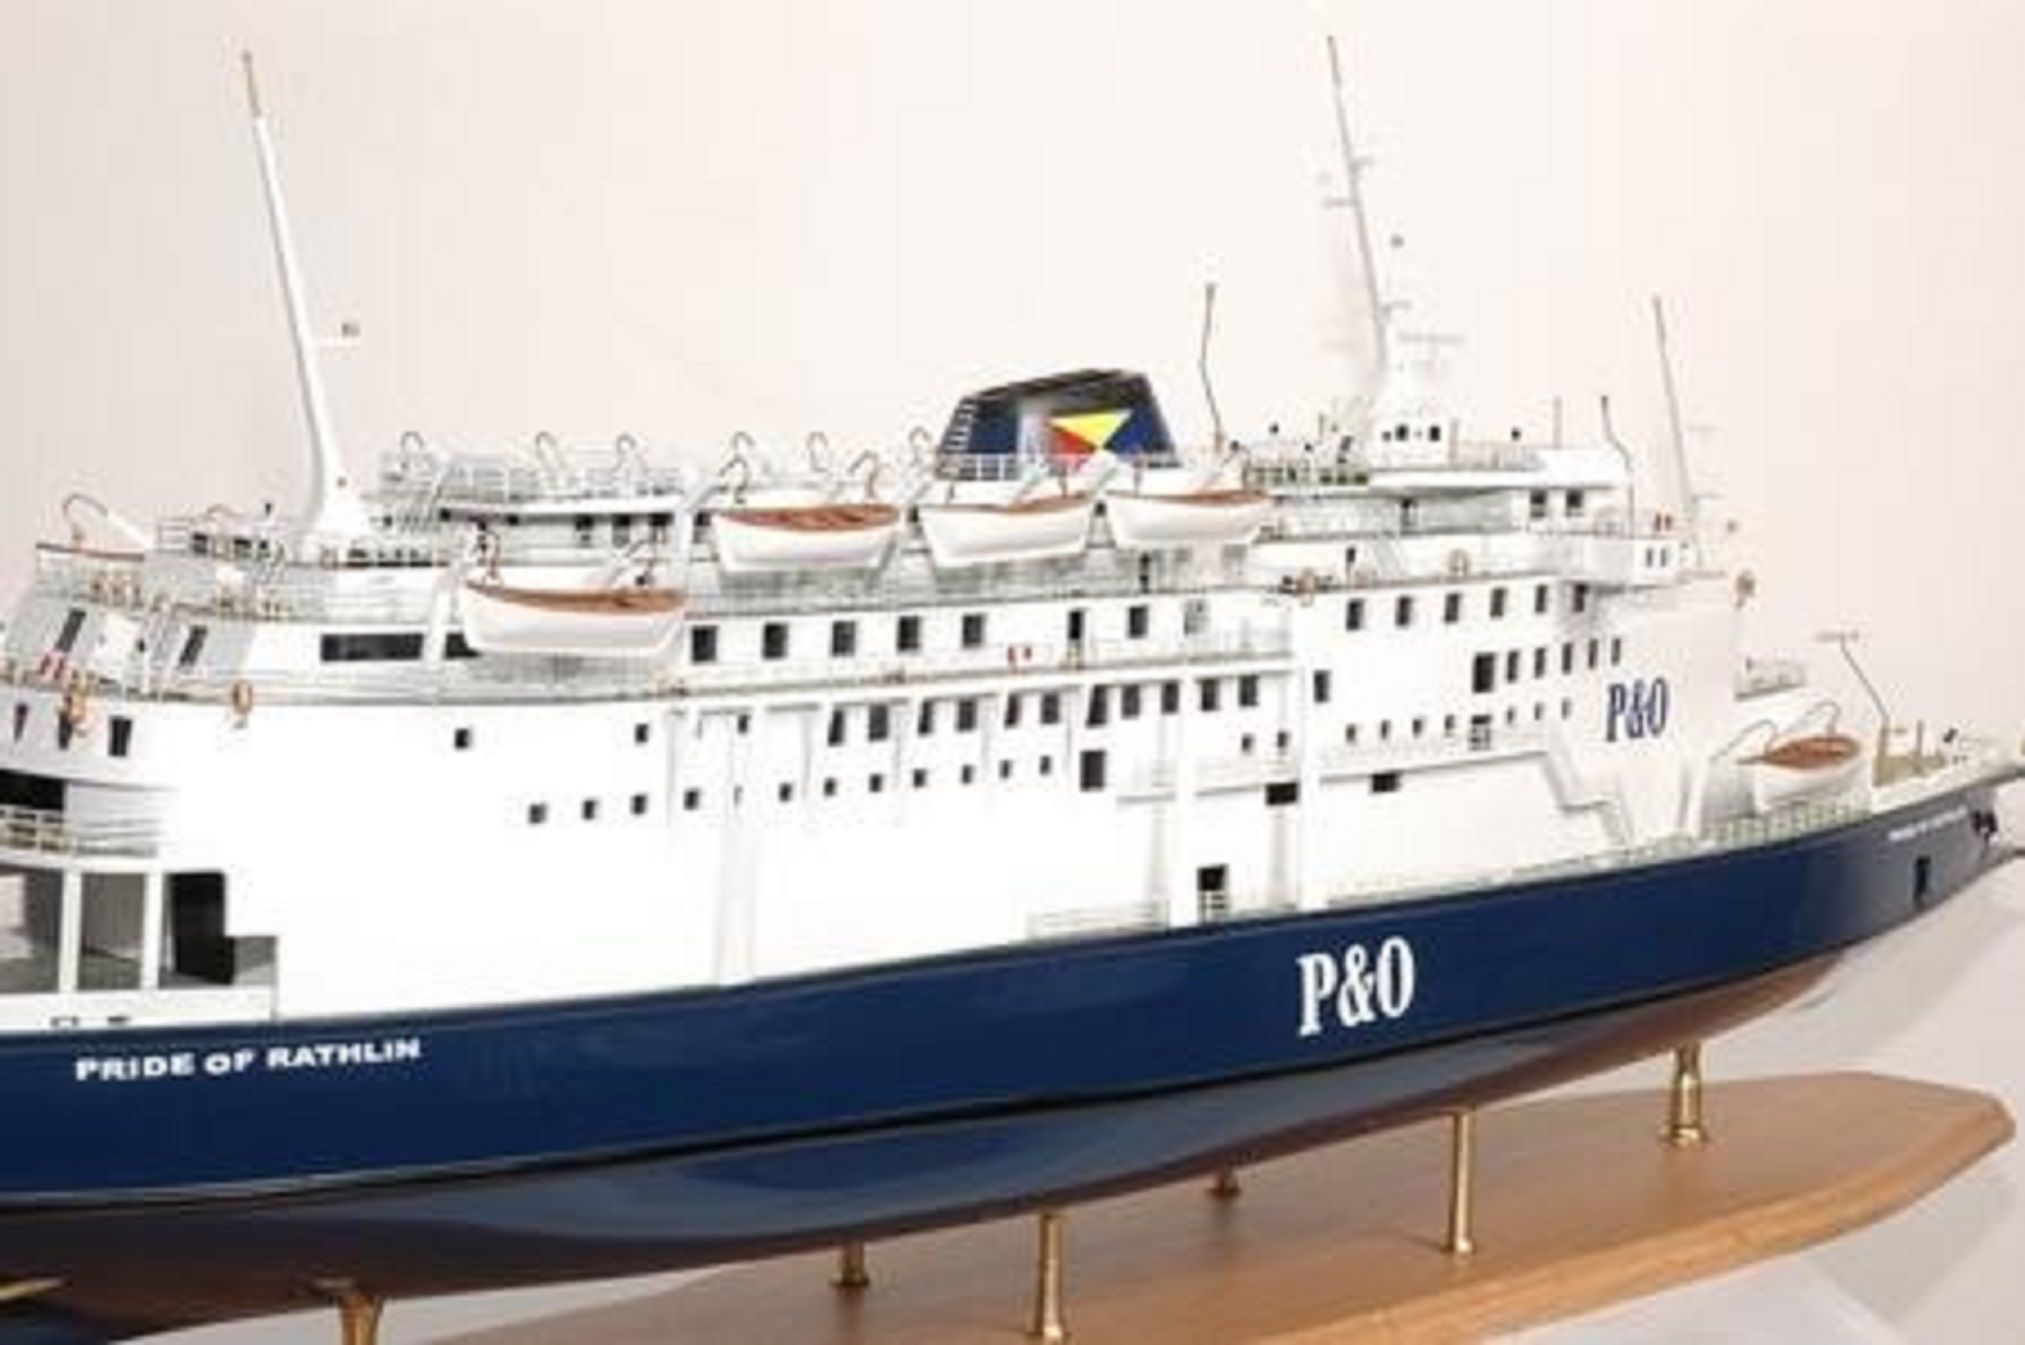 293-7549-P-O-model-ships-Pride-Aisla-and-Rathlin-Premier-Range